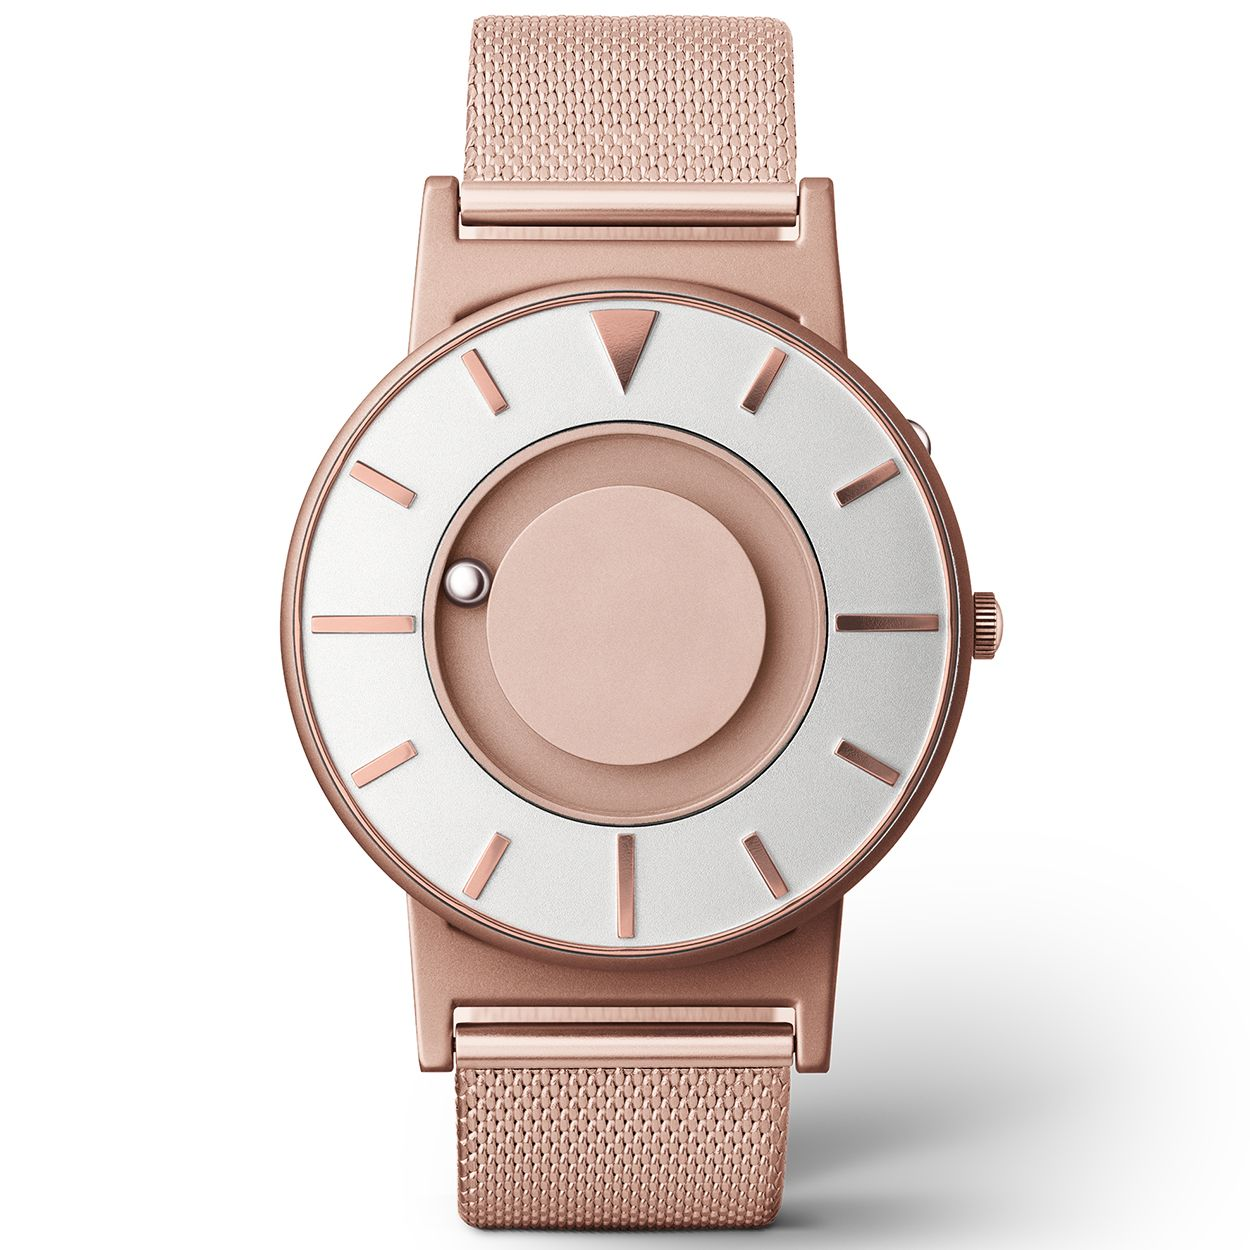 009043d0d08834 The iconic Bradley watch is now available in a new, feminine colour - dusky  pink rose-gold. Each Bradley Mesh features a rose-gold PVD coated stainless  stee